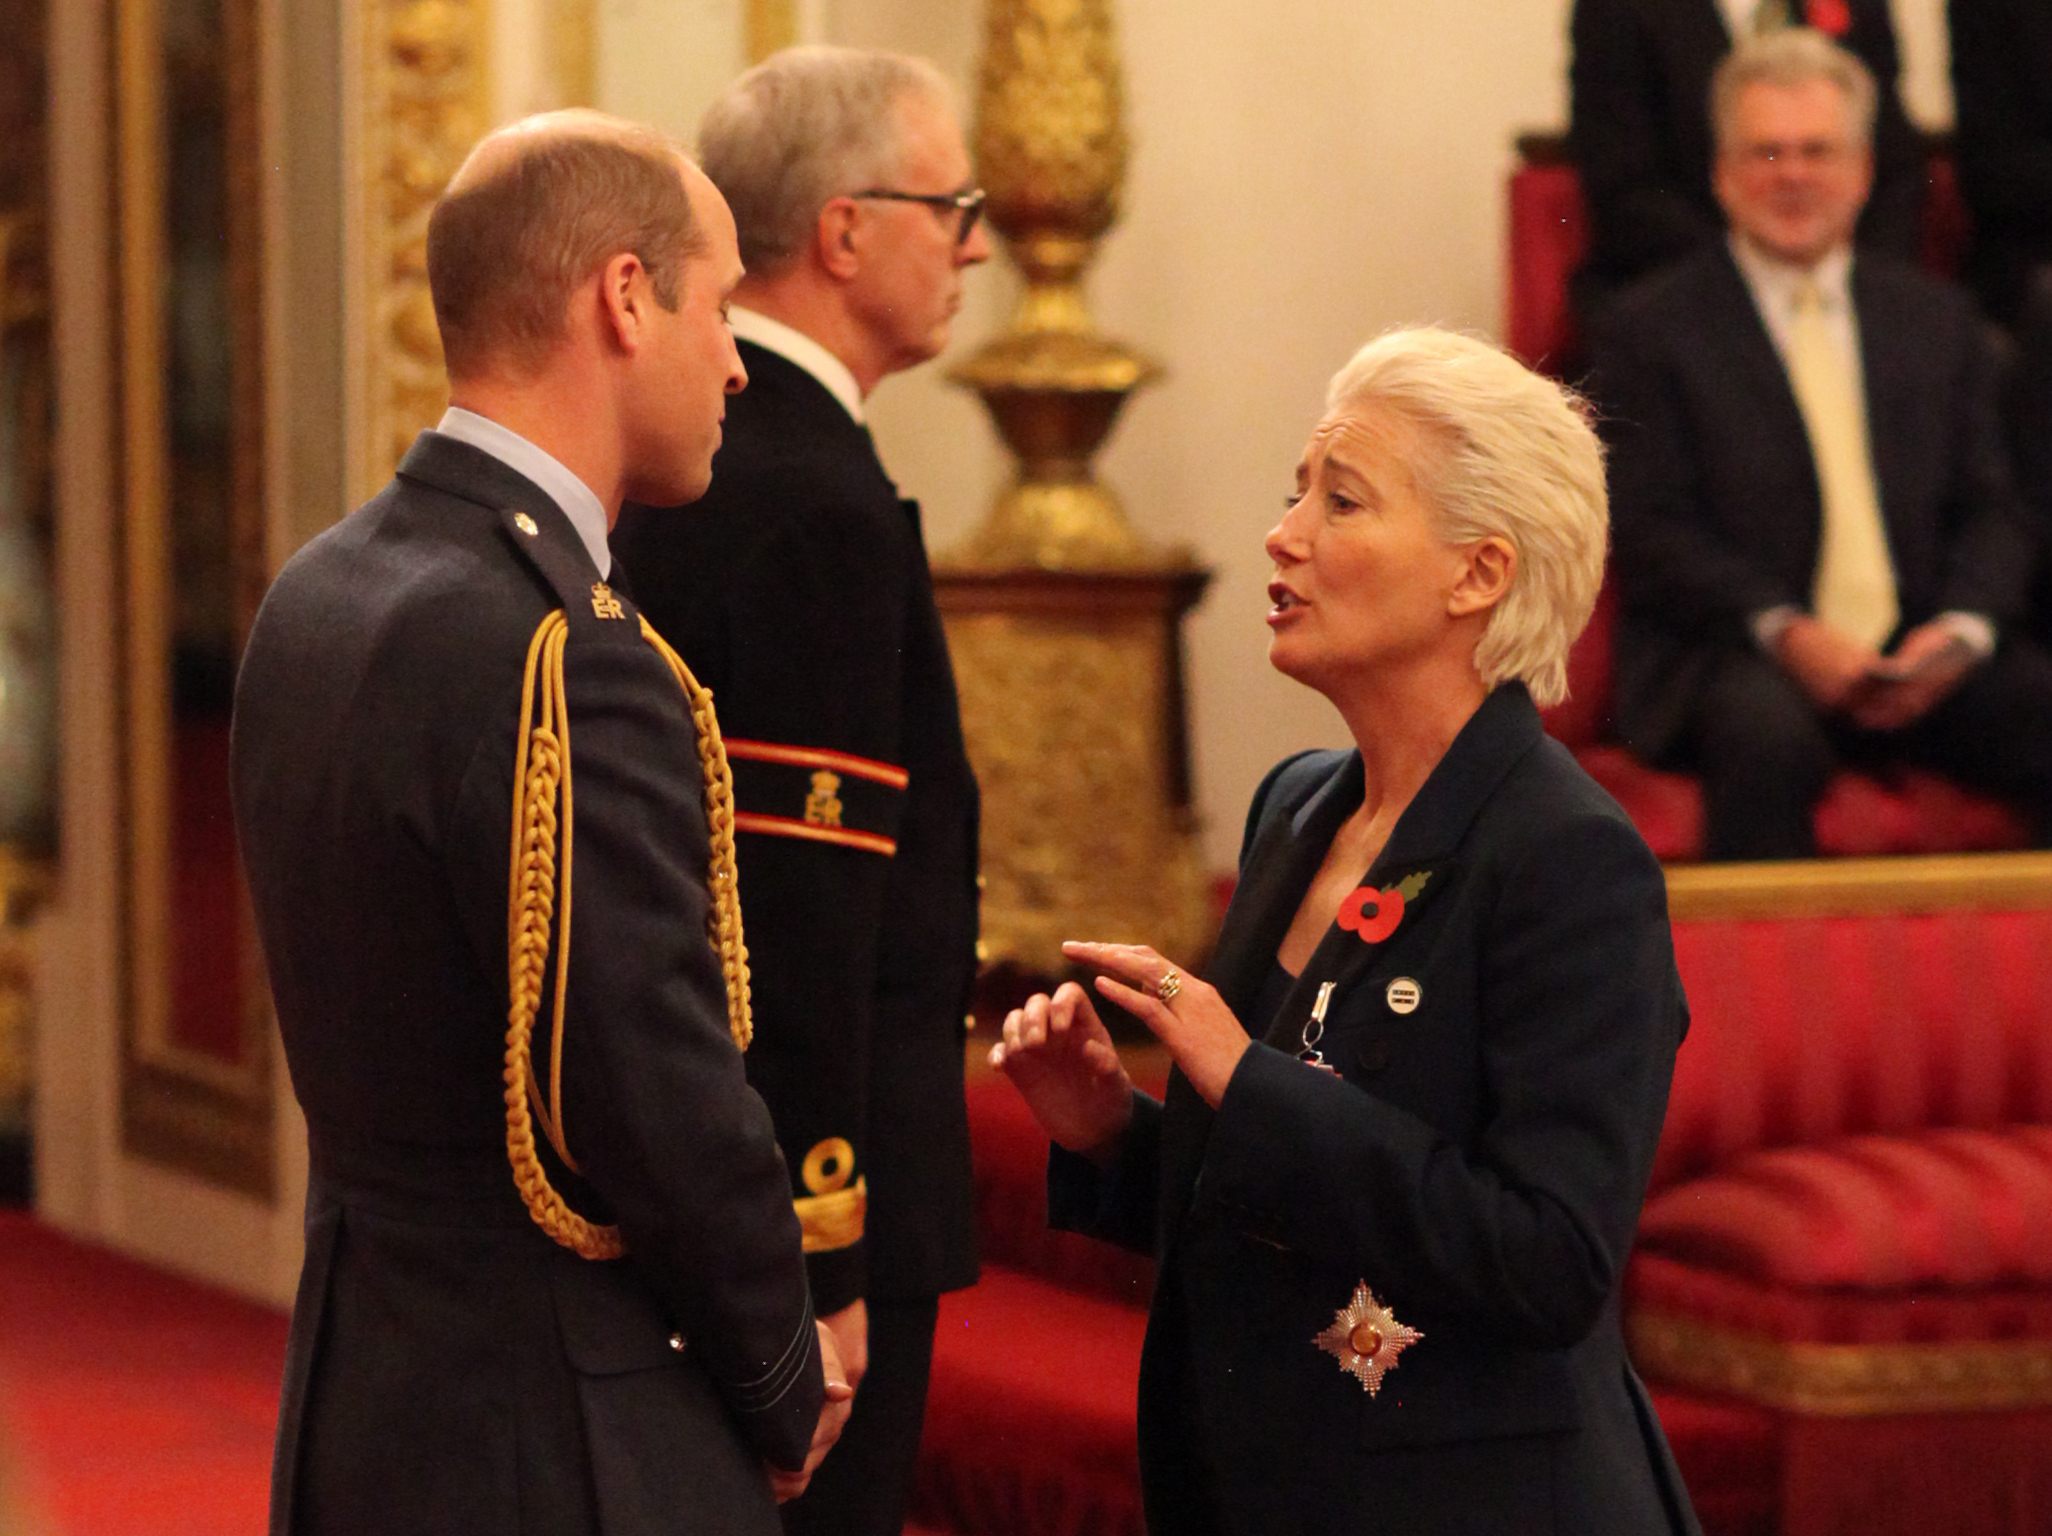 Actresses Emma Thompson and Sarah Gordy honoured at Buckingham Palace